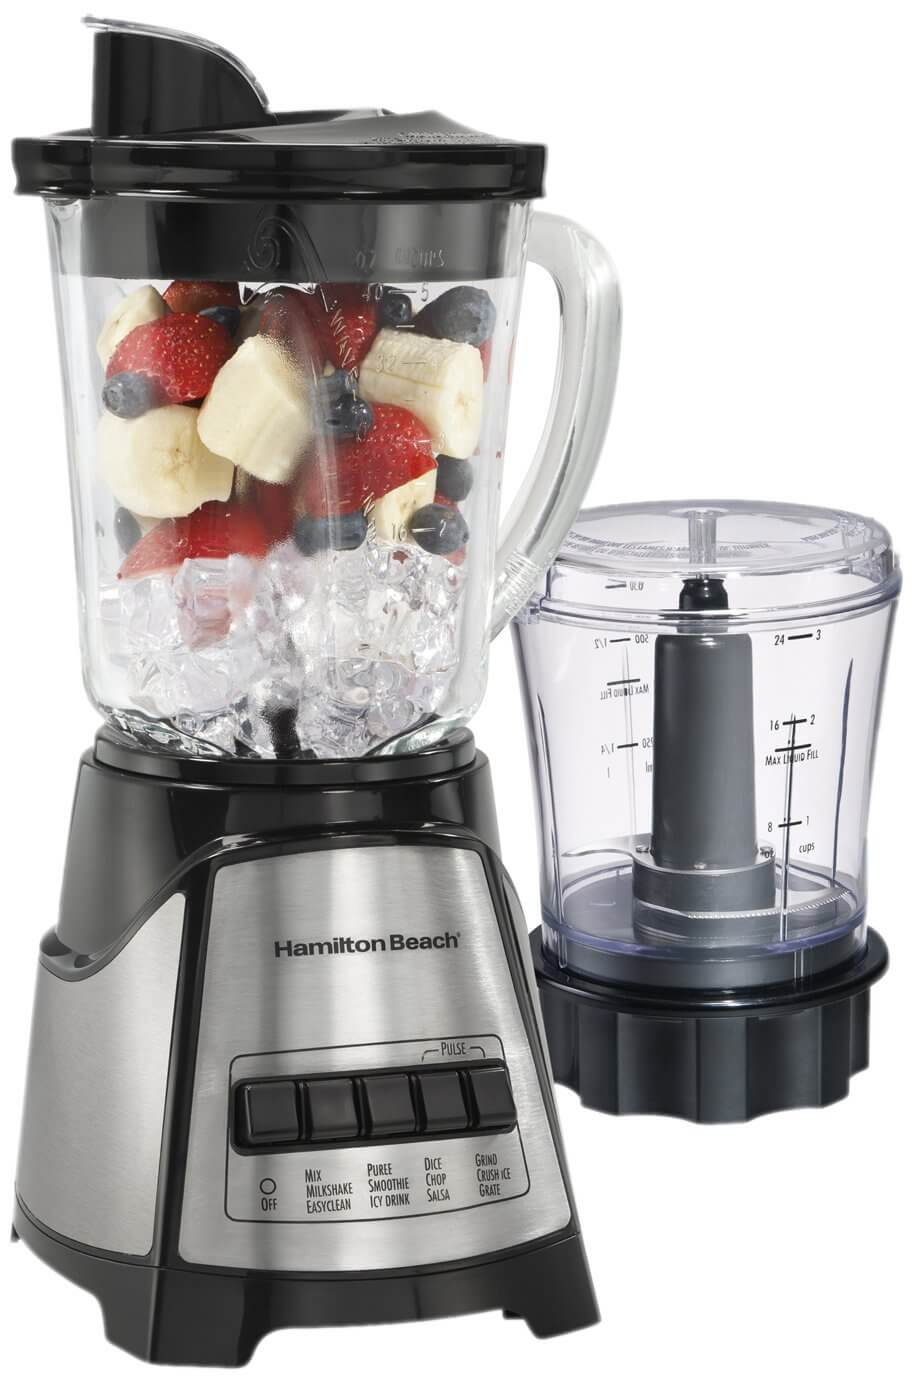 Hamilton Beach Power Elite Multi-Function Food Processor